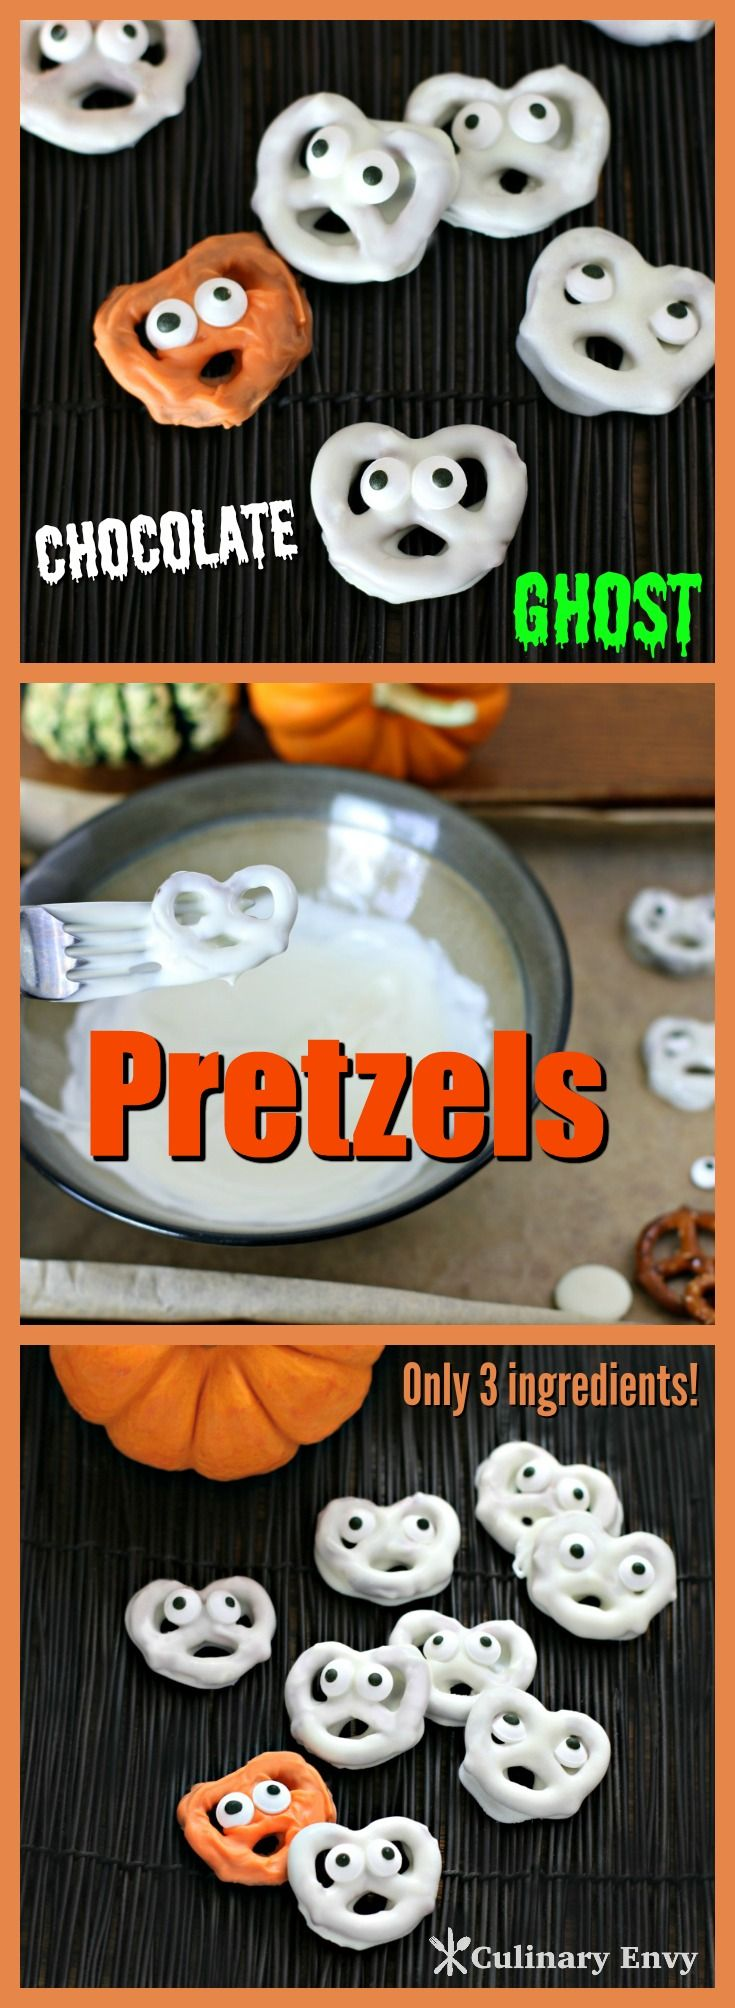 Delicious Chocolate Ghost Pretzels are salty/sweet white chocolate dipped mini pretzels turned into darling little ghosts with candy eyes using only 3 ingredients. It's the perfect (and tastiest) edible Halloween craft for little kids. Click to read more!